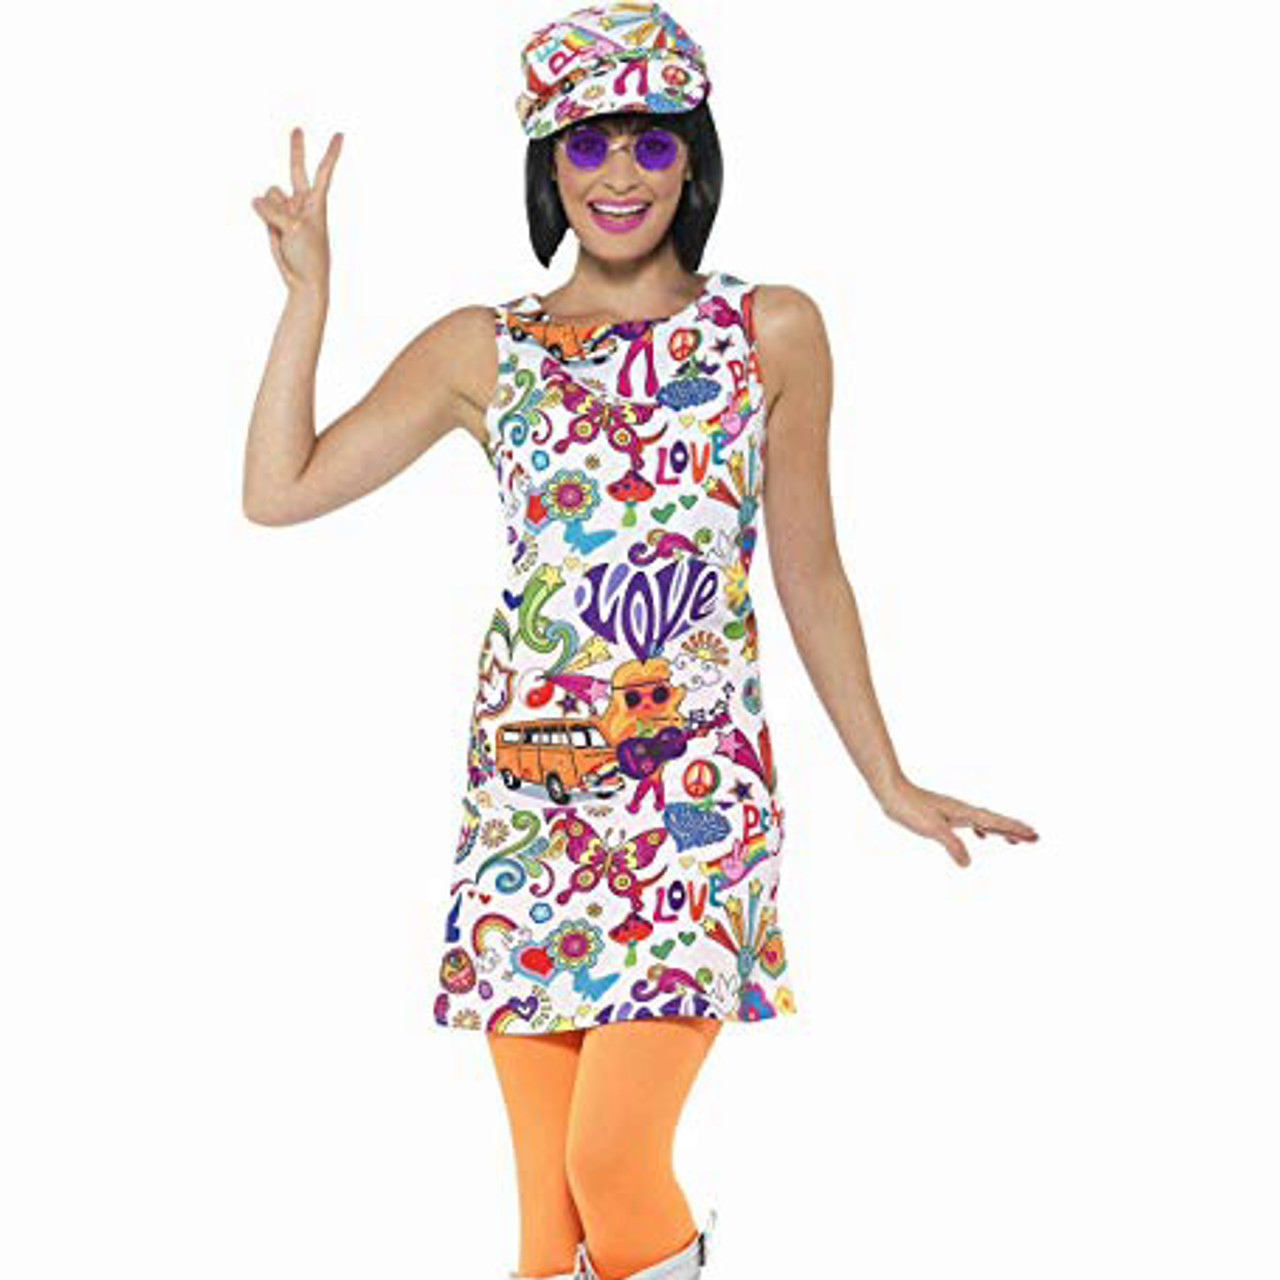 Ladies 60s Retro Go Go Girl Flower Print Costume for 60s Rock N Roll Fancy Dress